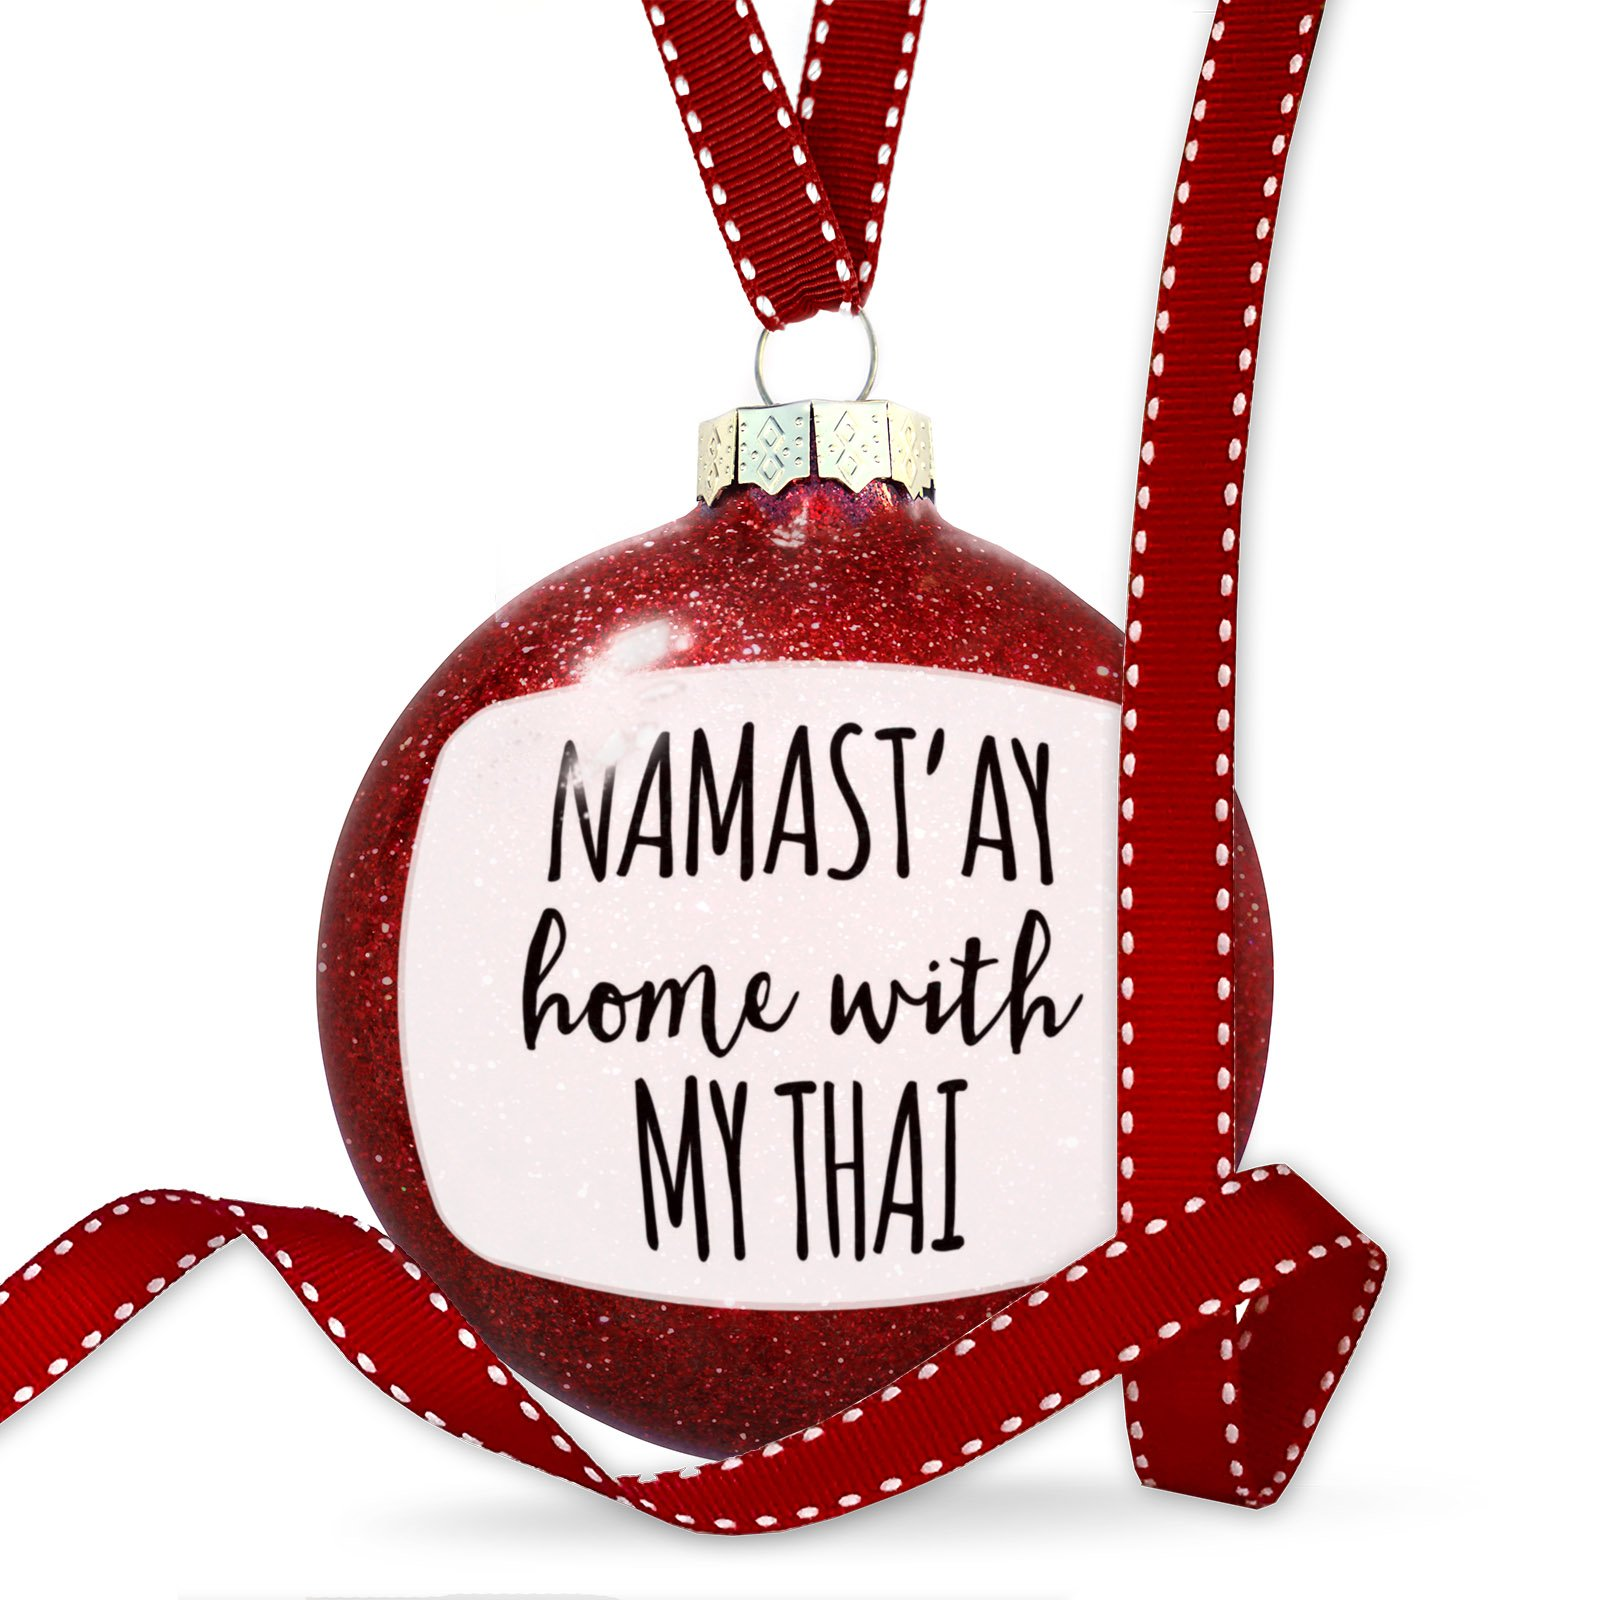 Christmas Decoration Namast'ay Home With My Thai Simple Sayings Ornament